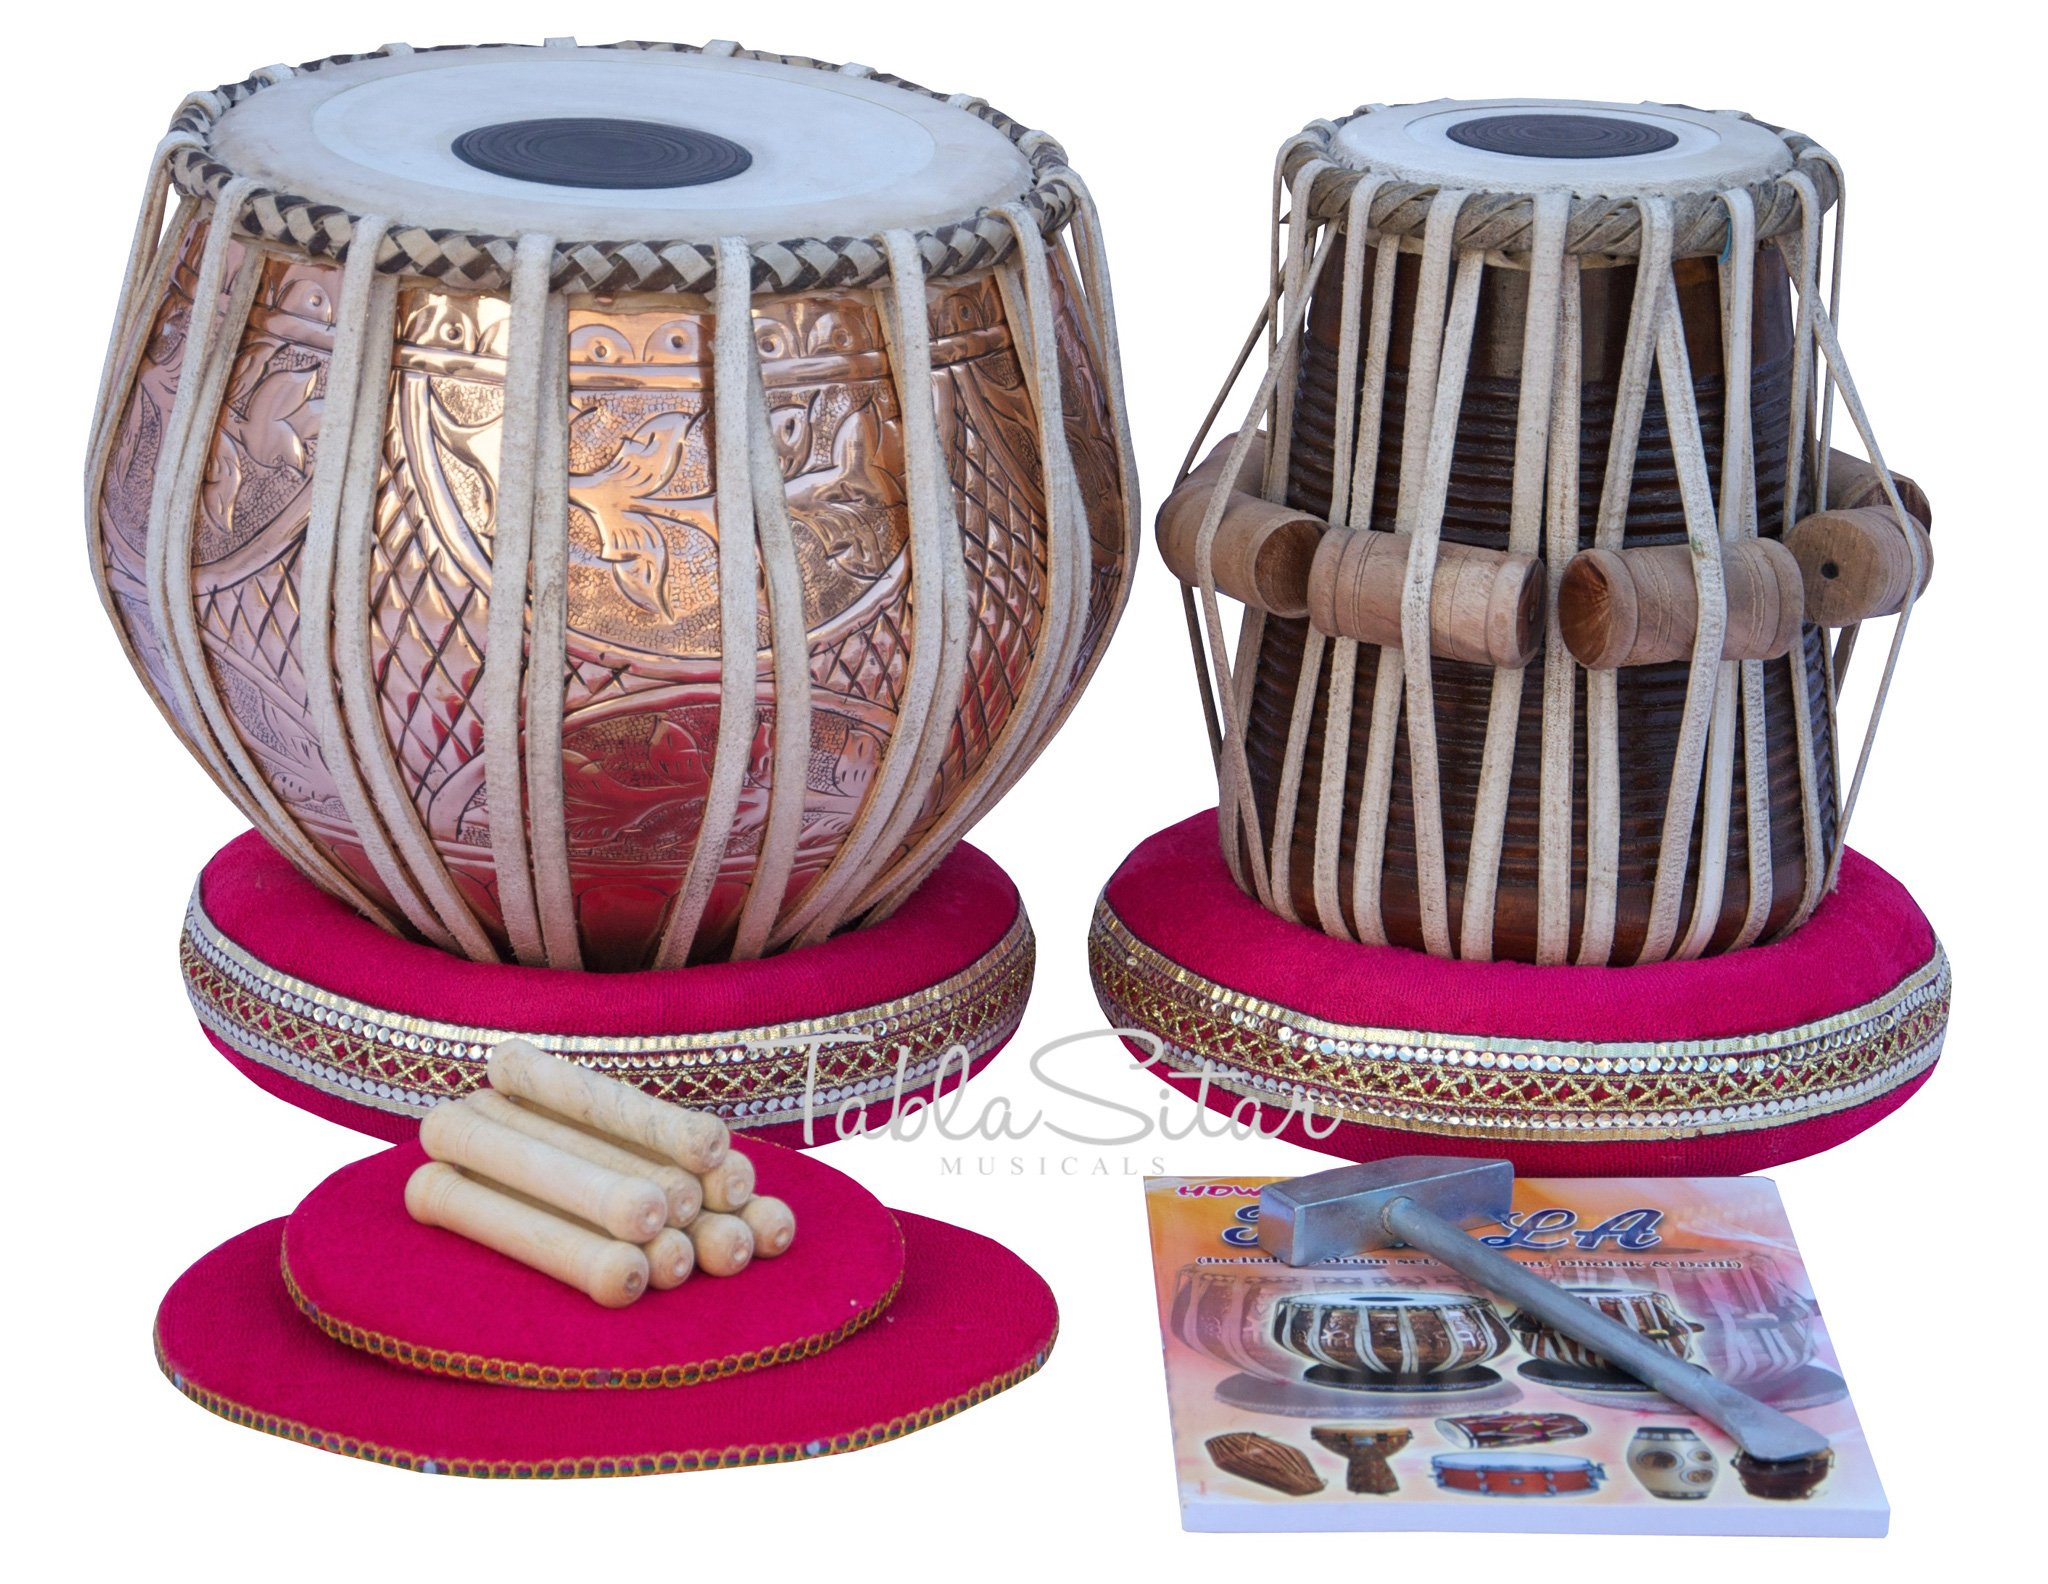 Tabla Drum Set by Maharaja Musicals, Professional, 3.5 Kg Copper Bayan - Designer Carving, Sheesham Tabla Dayan, Padded Bag, Book, Hammer, Cushions, Cover, Tabla Musical Instrument (PDI-CJH) by Maharaja Musicals